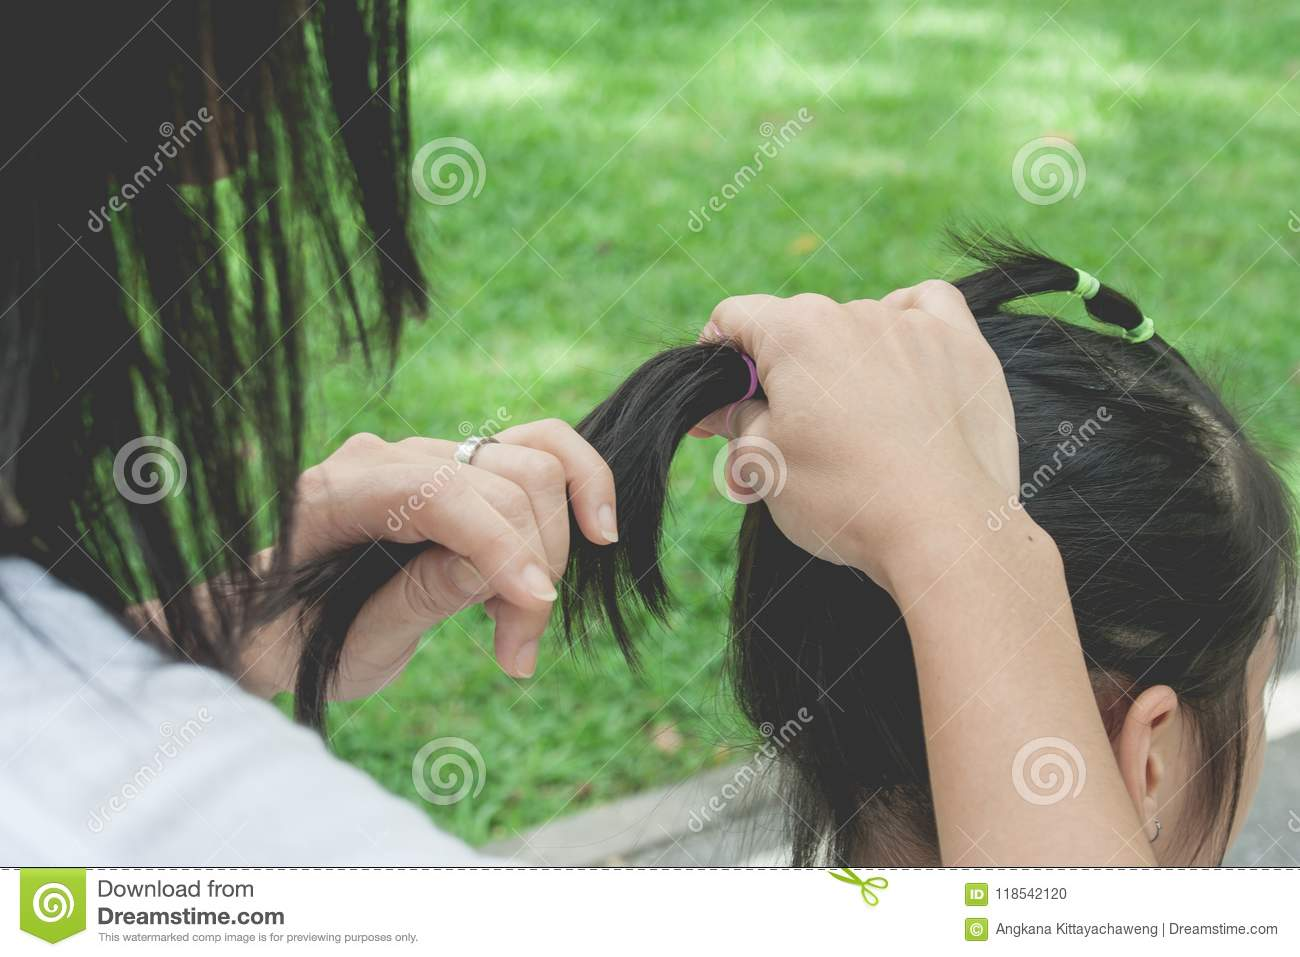 Woman tying black hair of little cute child in ponytail style with elastic band at public park.